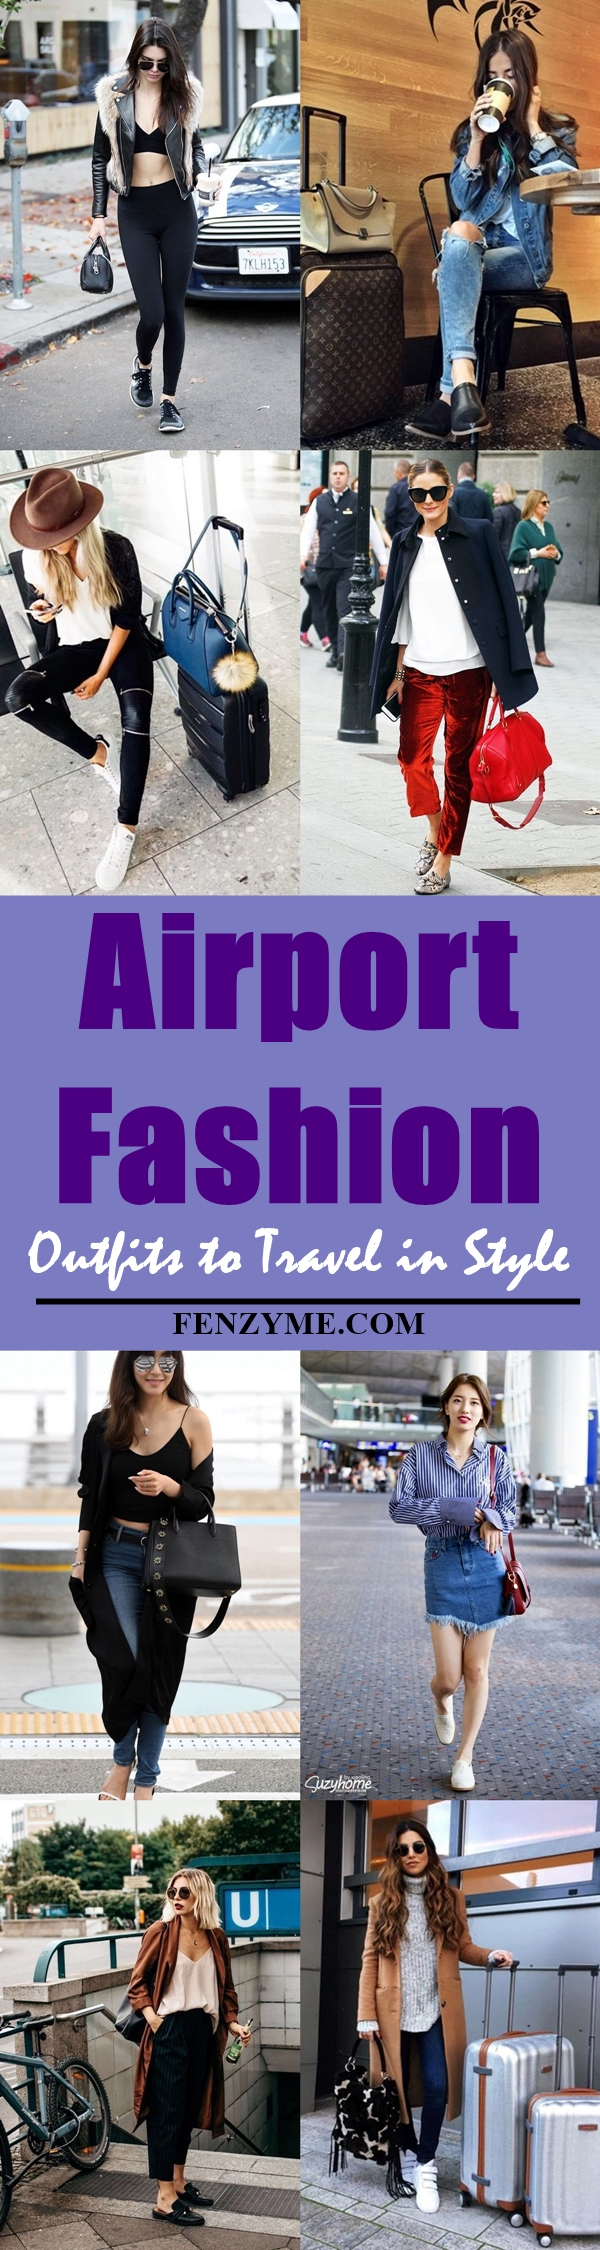 airport-fashion-outfits-to-travel-in-style-18-tile